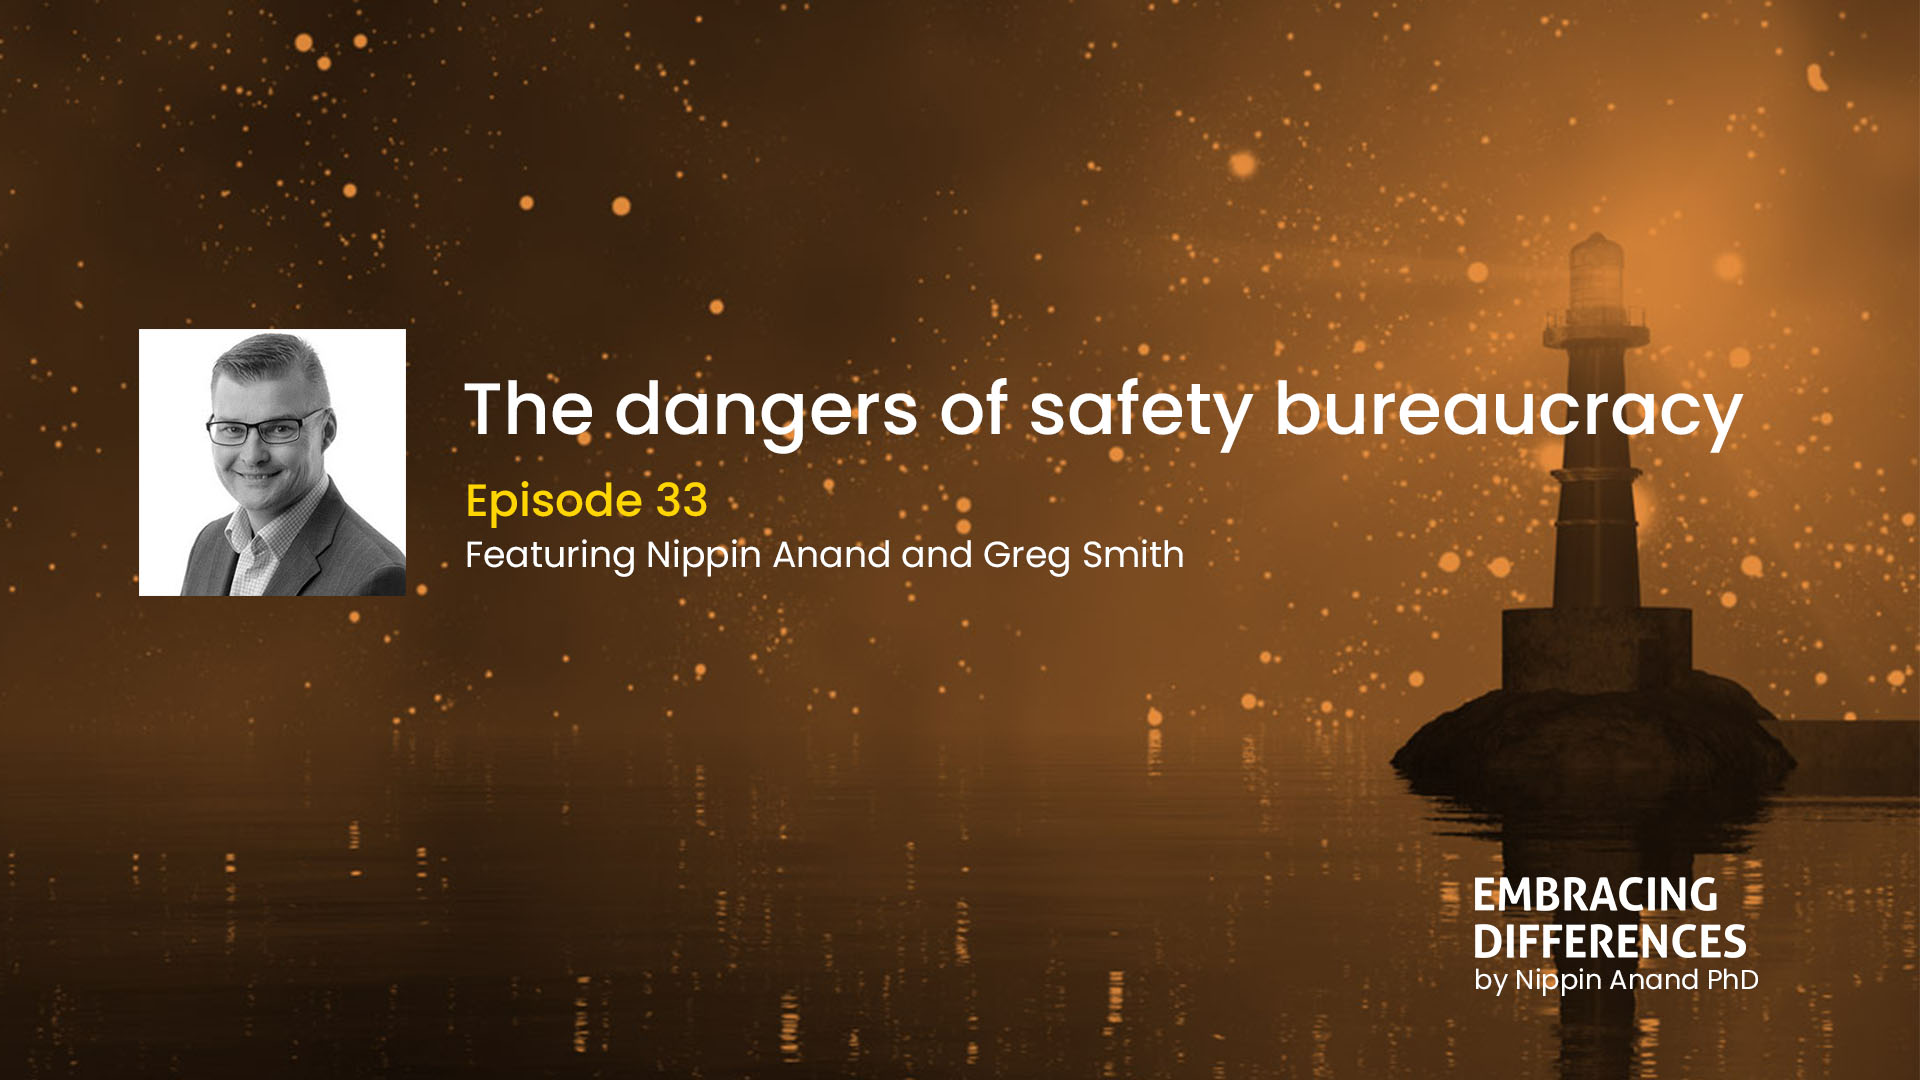 The dangers of safety bureaucracy